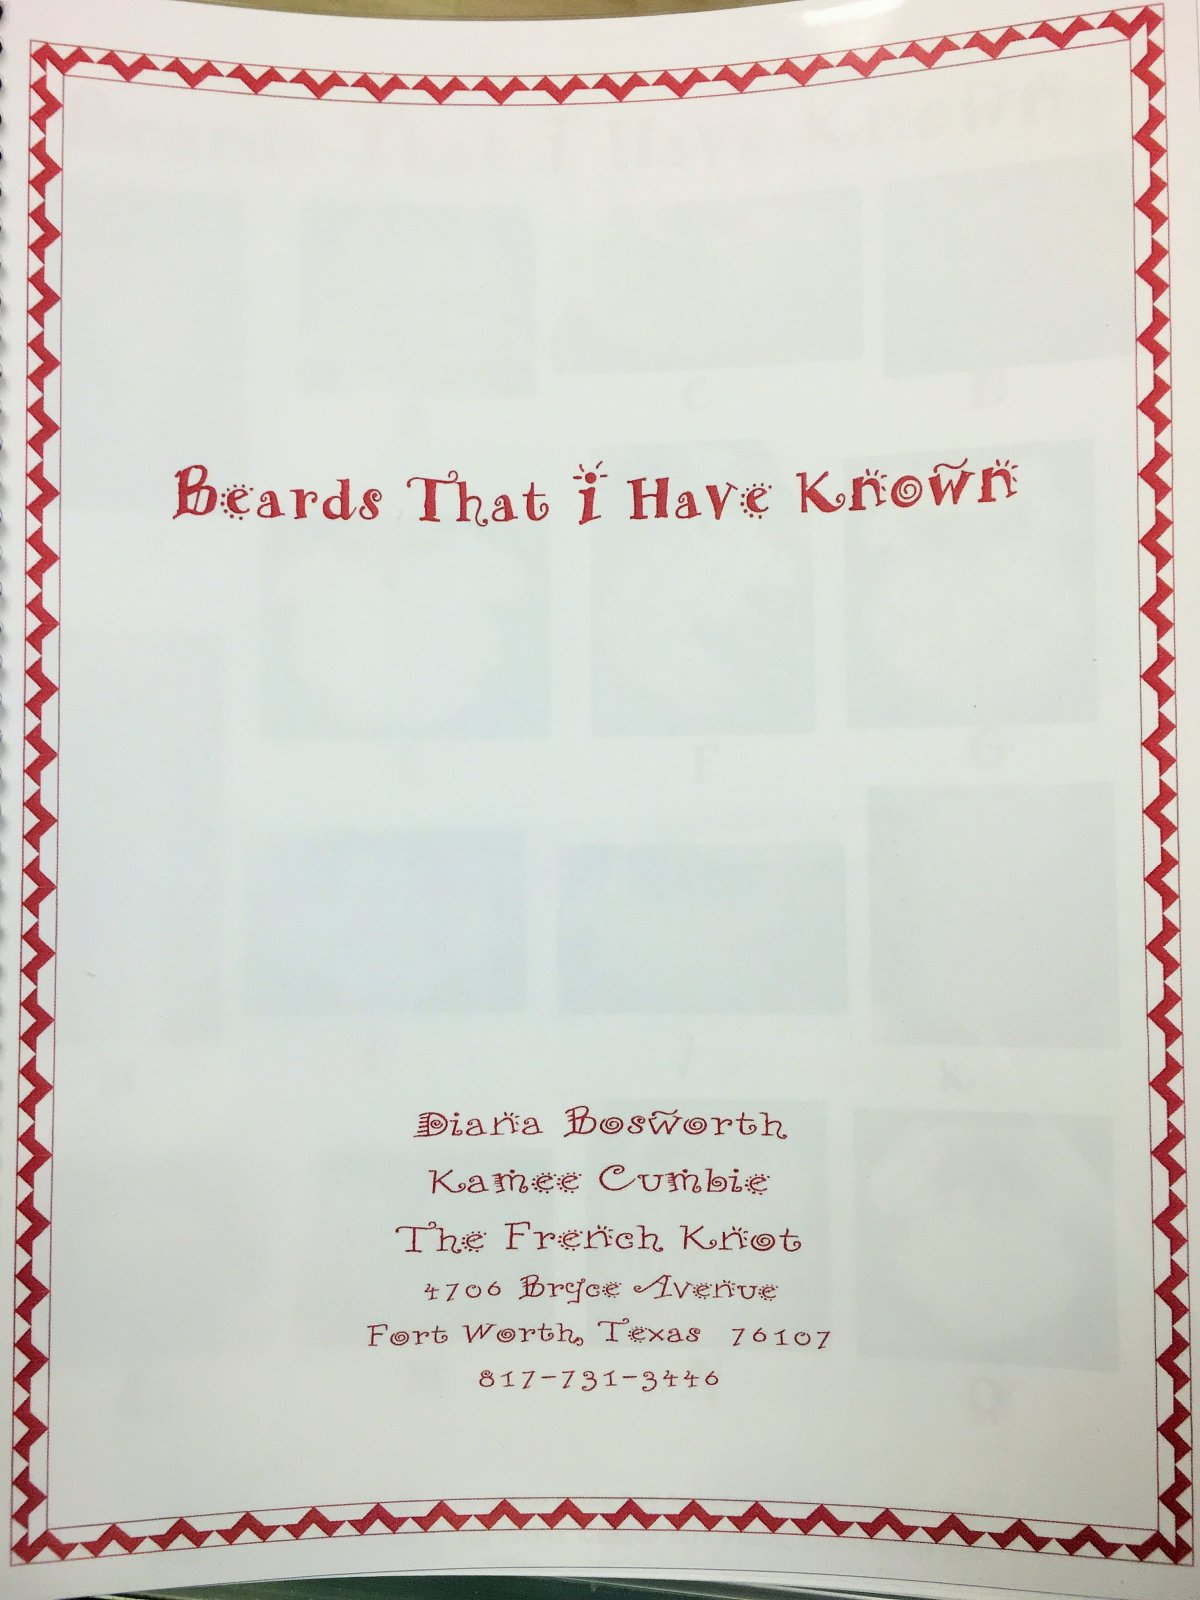 Beards That I Have Know